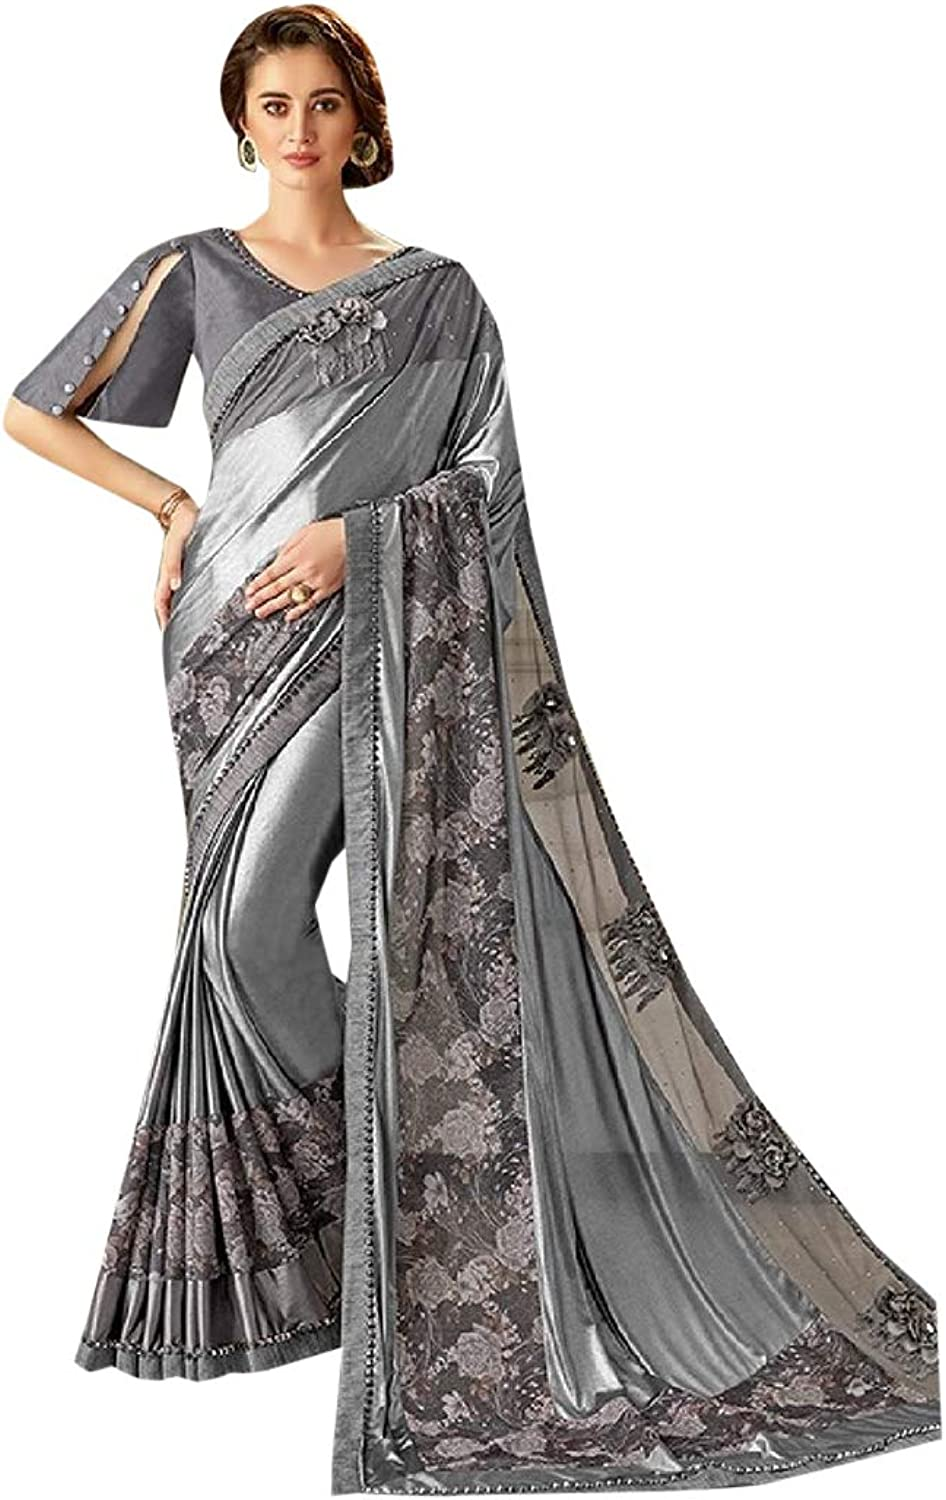 Designer Bollywood style Saree with Stylish Blouse for Women Indian Trendy Cocktail Party wear 7627